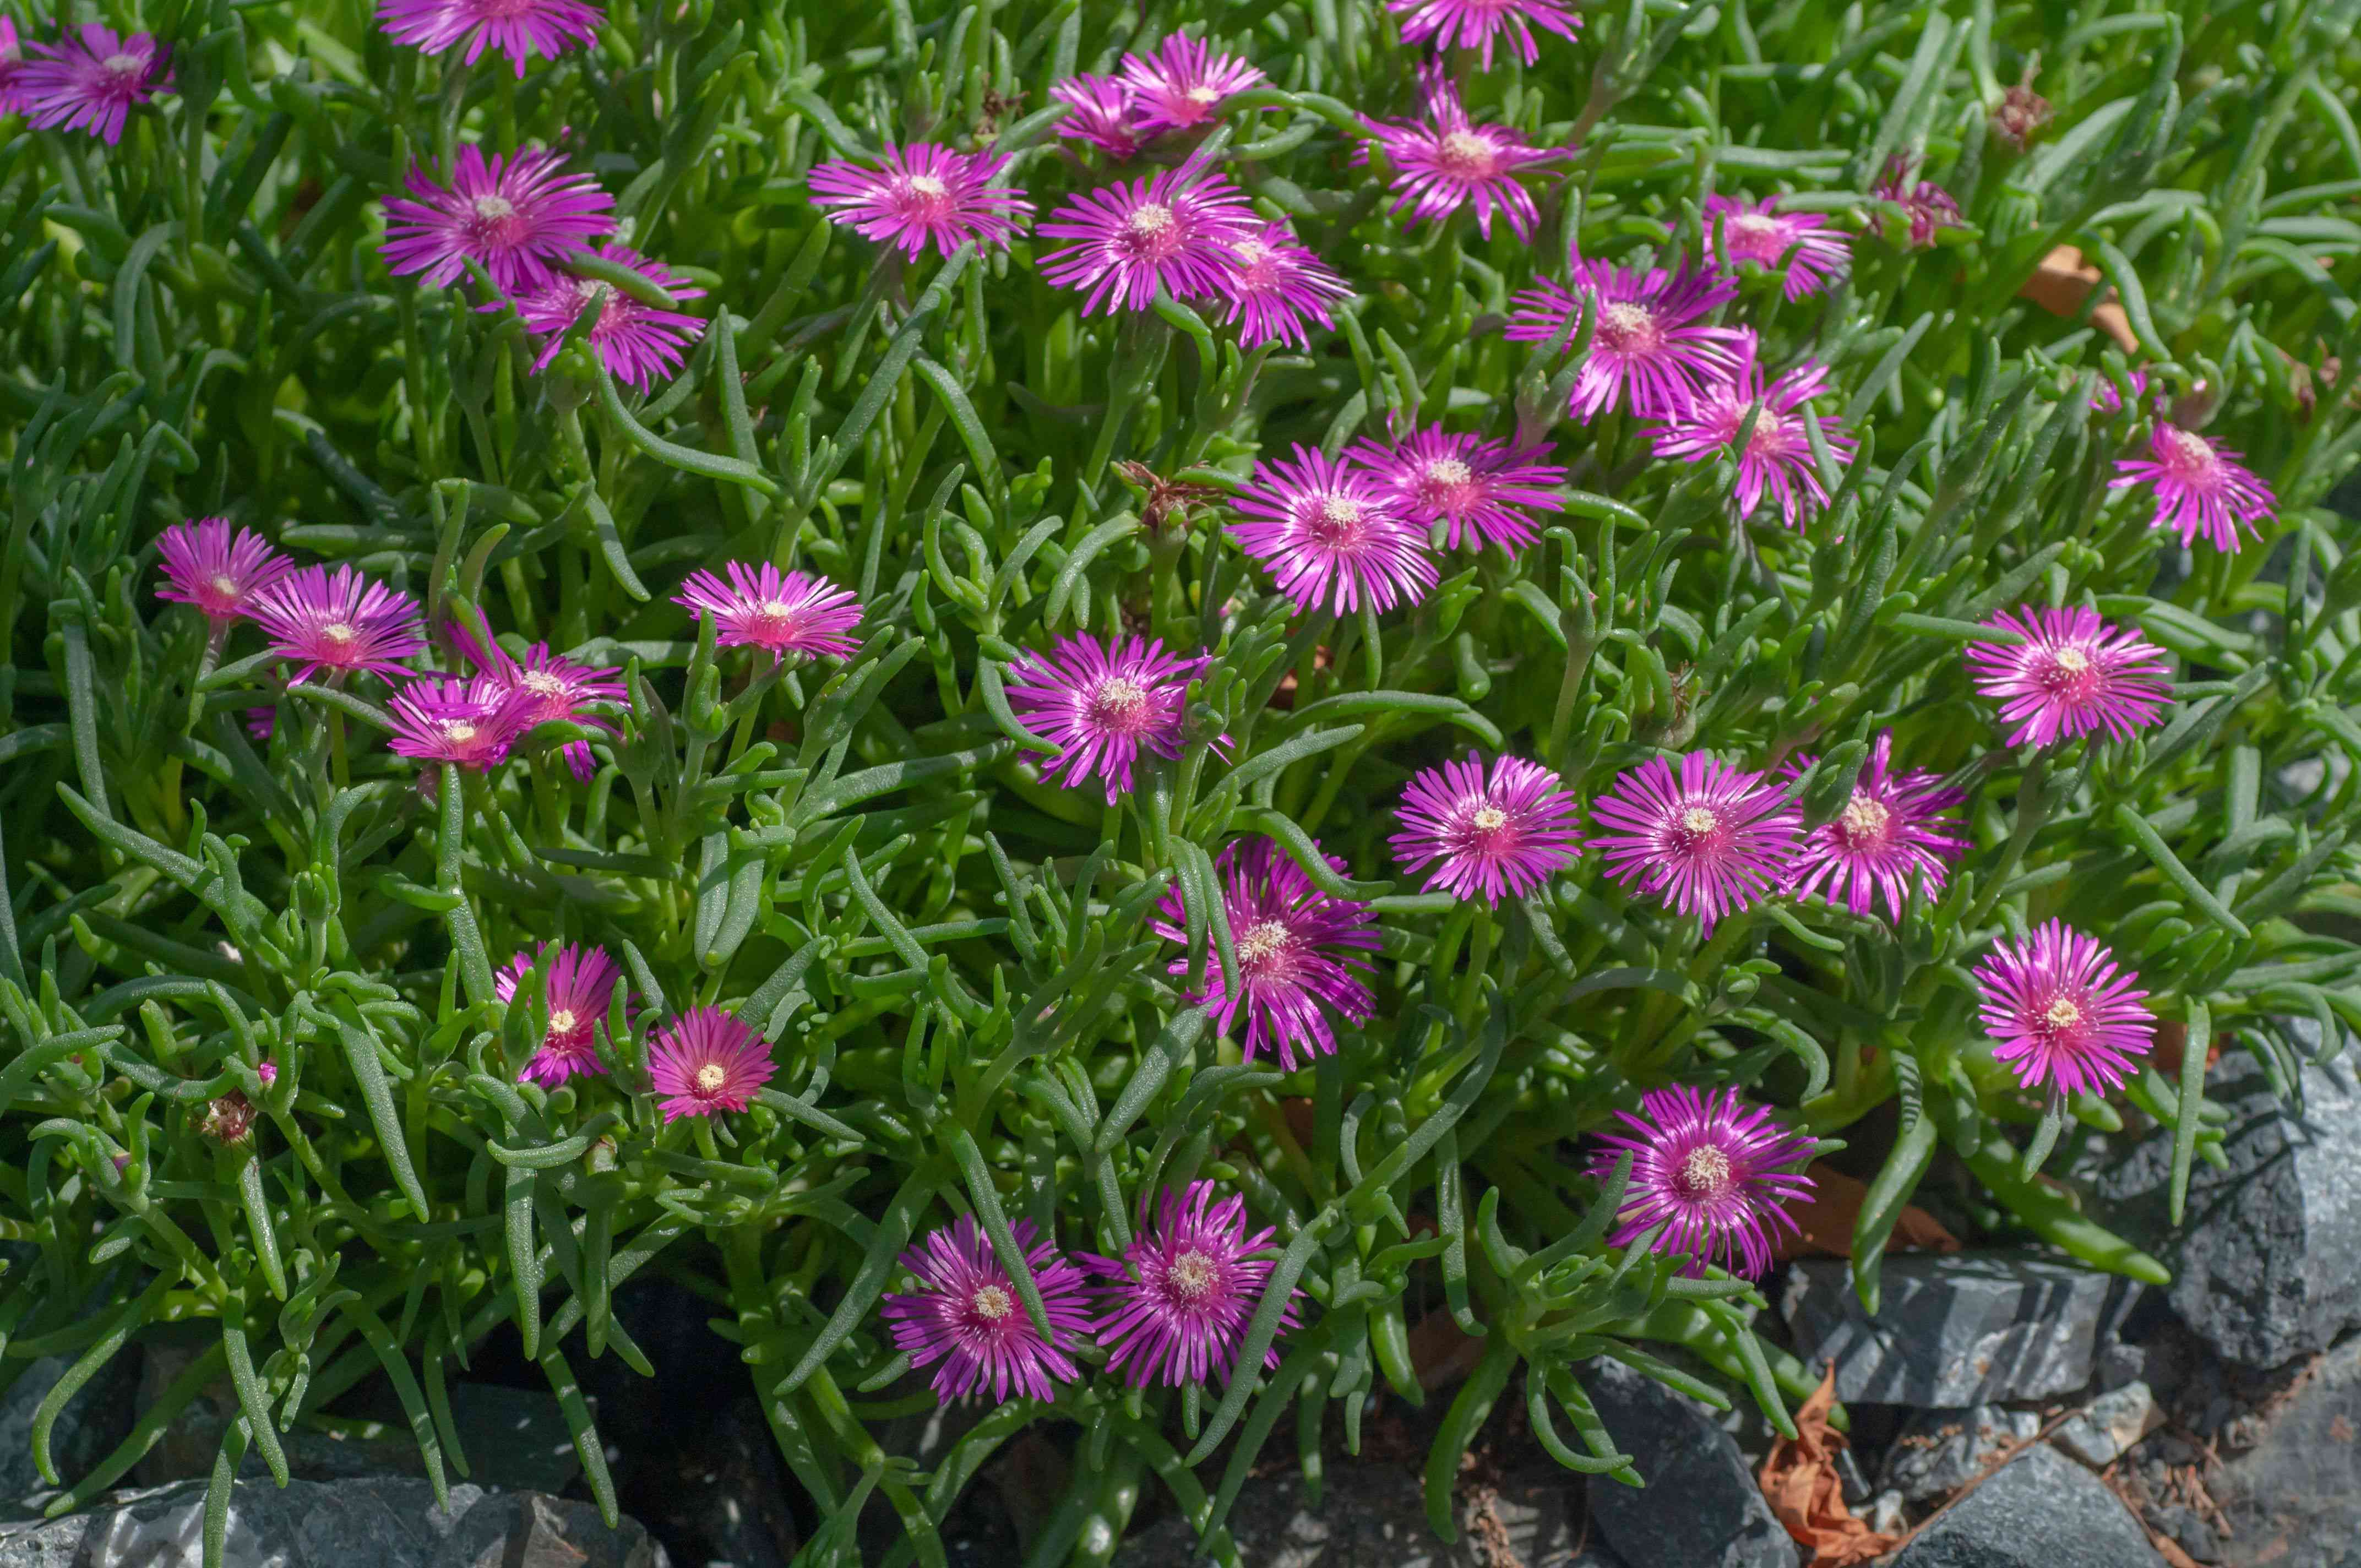 Purple ice plant with long thin leaves and deep pink radiating petals with sparkles in sunlight